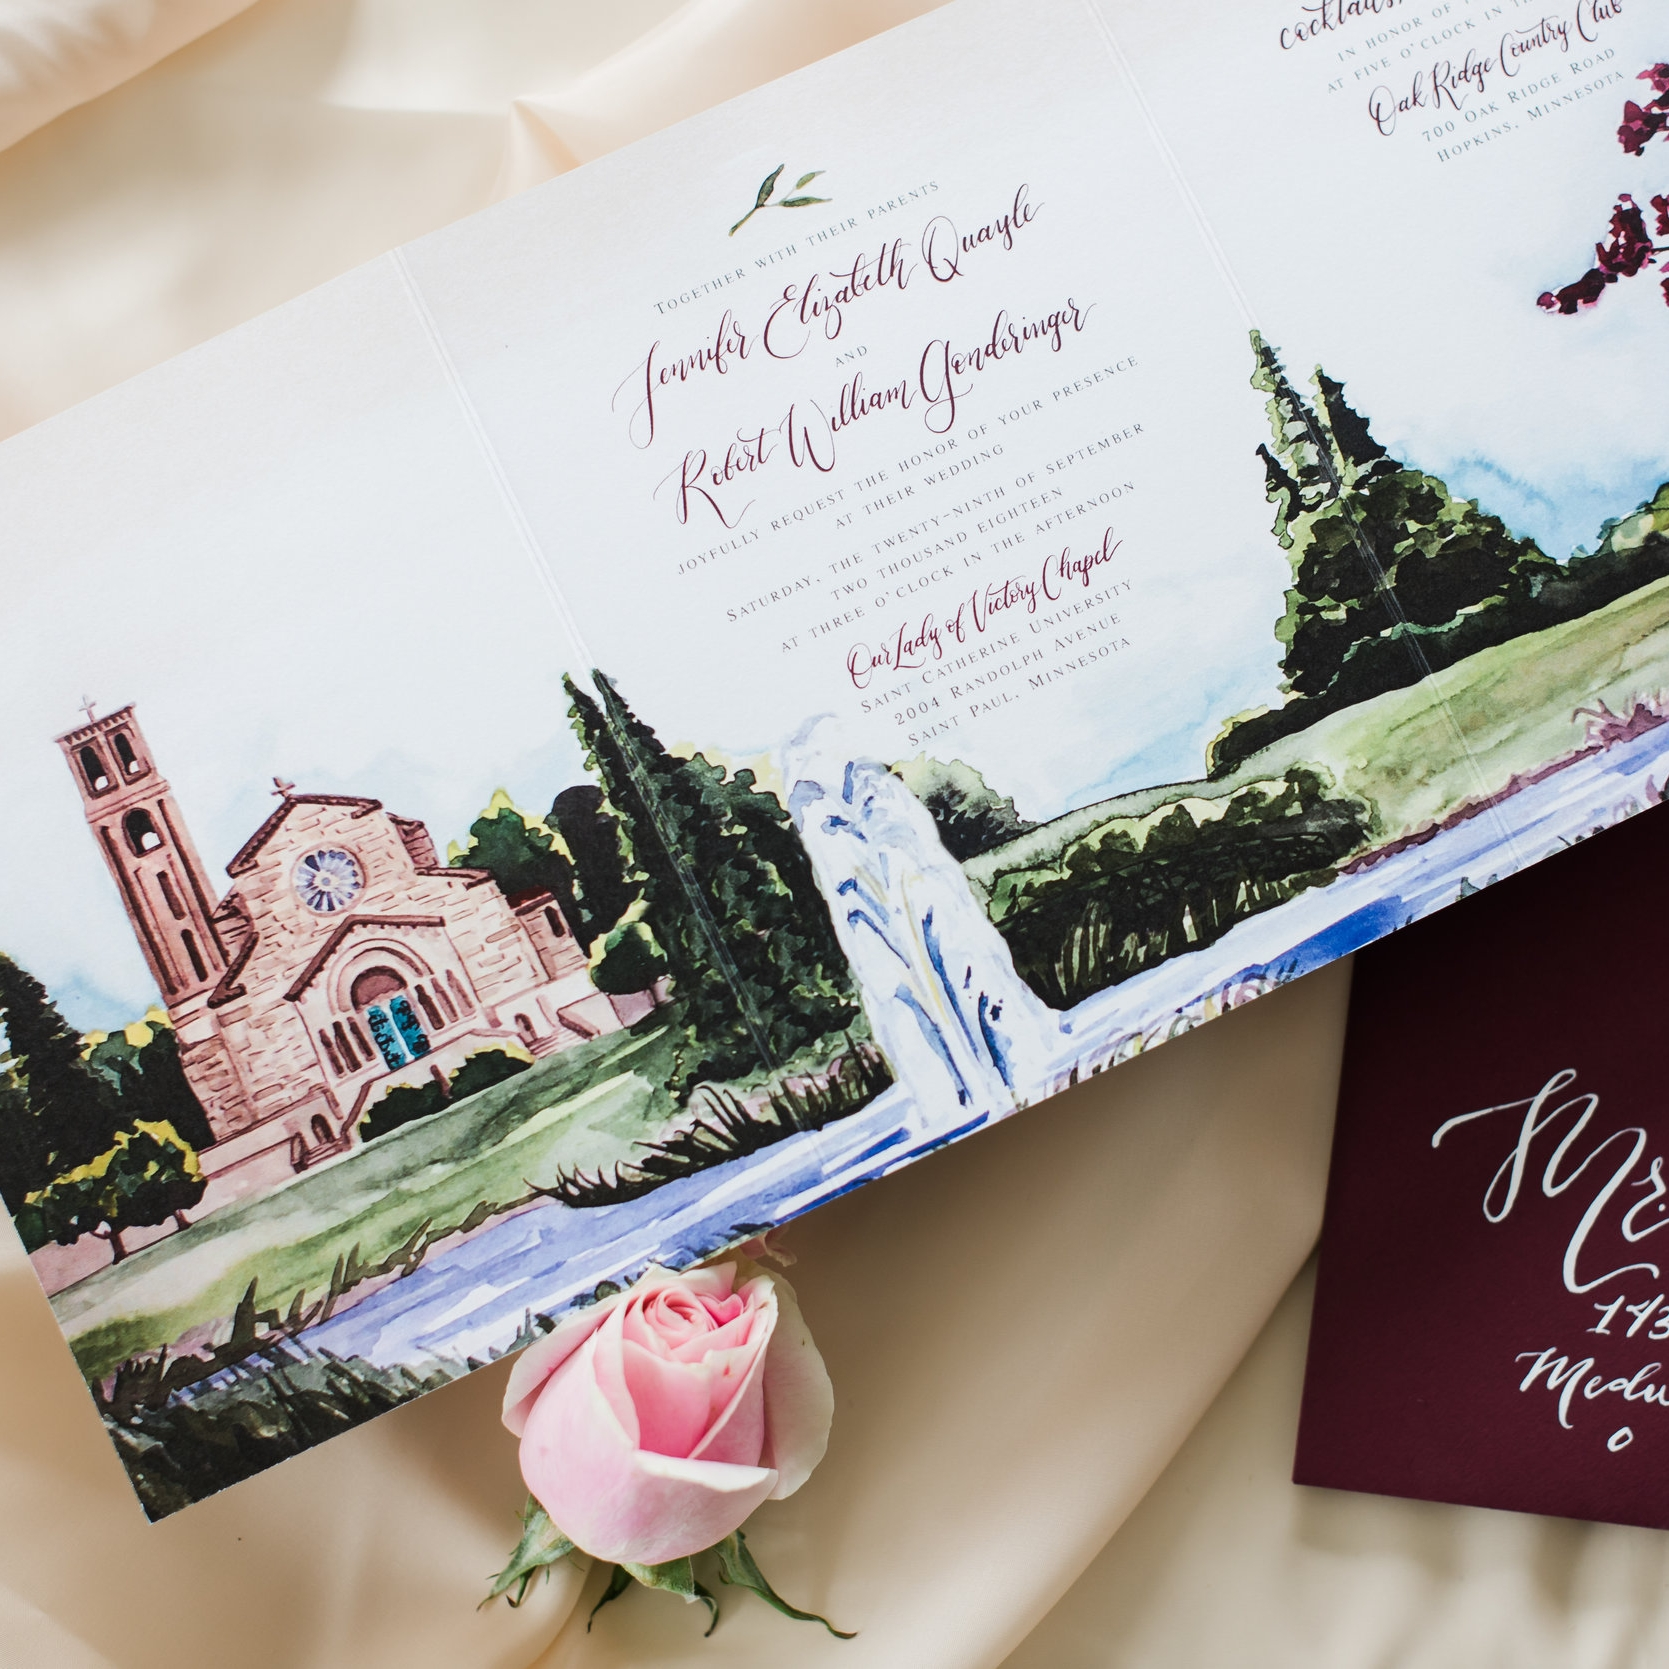 OUR LADY OF VICTORY CHAPEL VENUE WATERCOLOR INVITATIONS